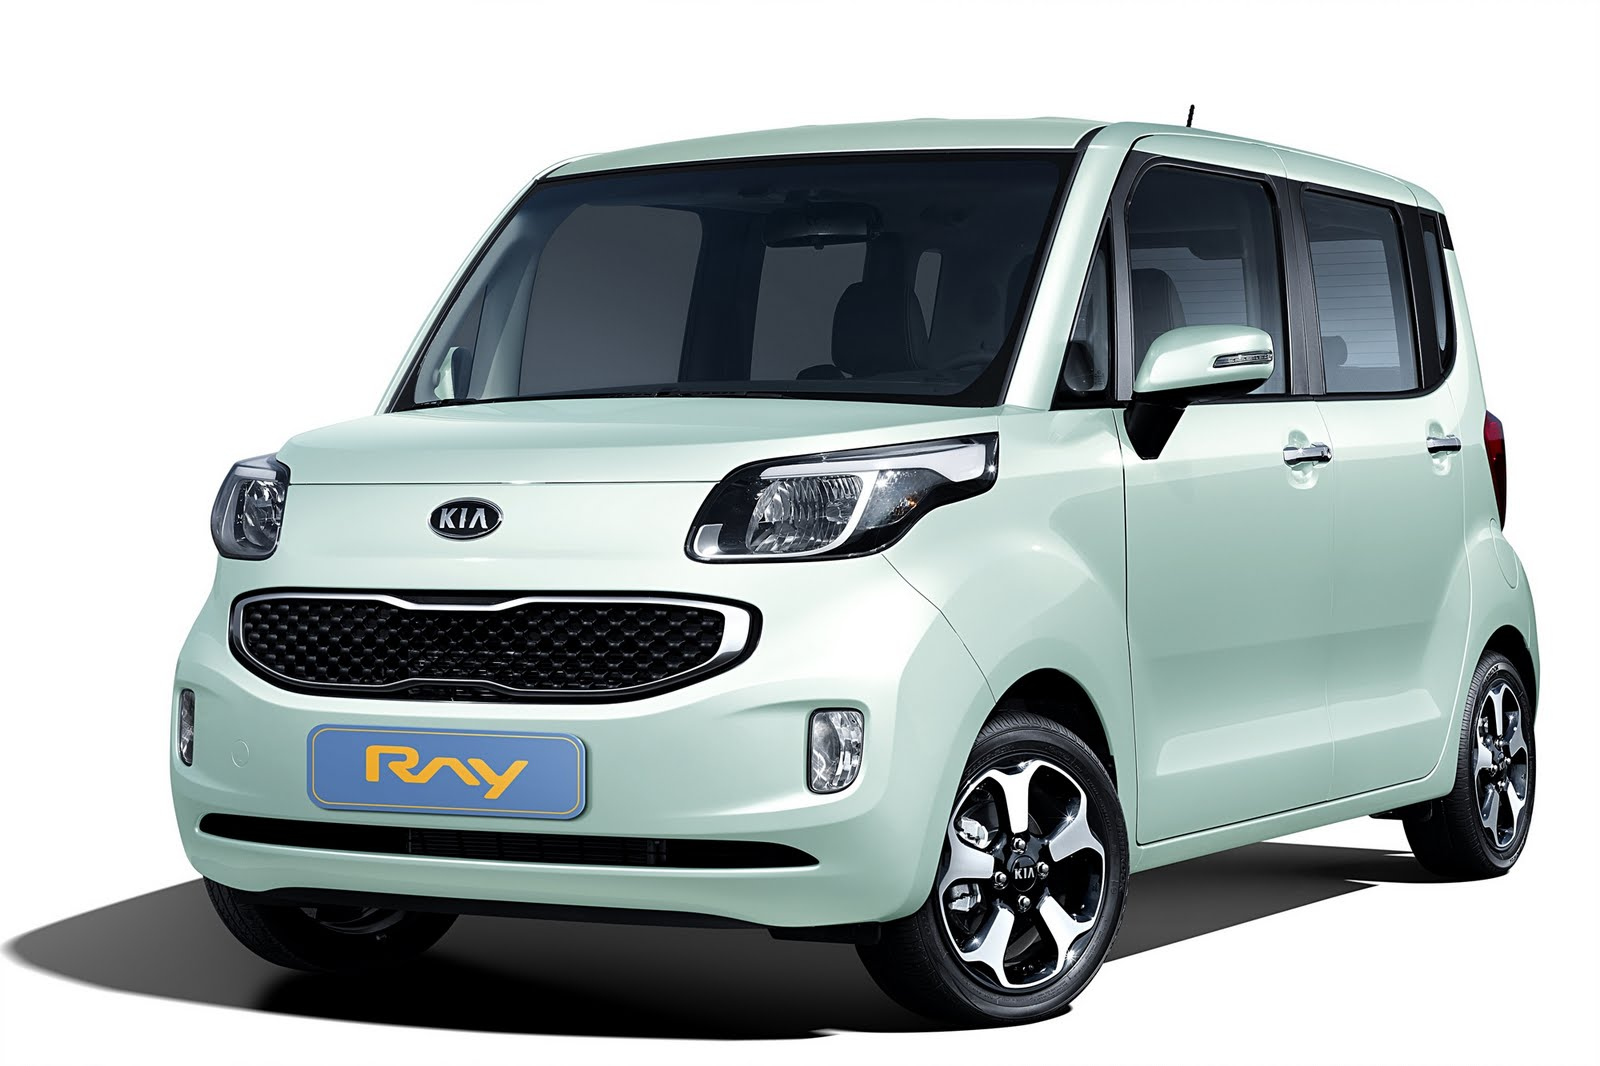 Kia cars reasons why they are so good kia news blog for 2 1 2 box auto